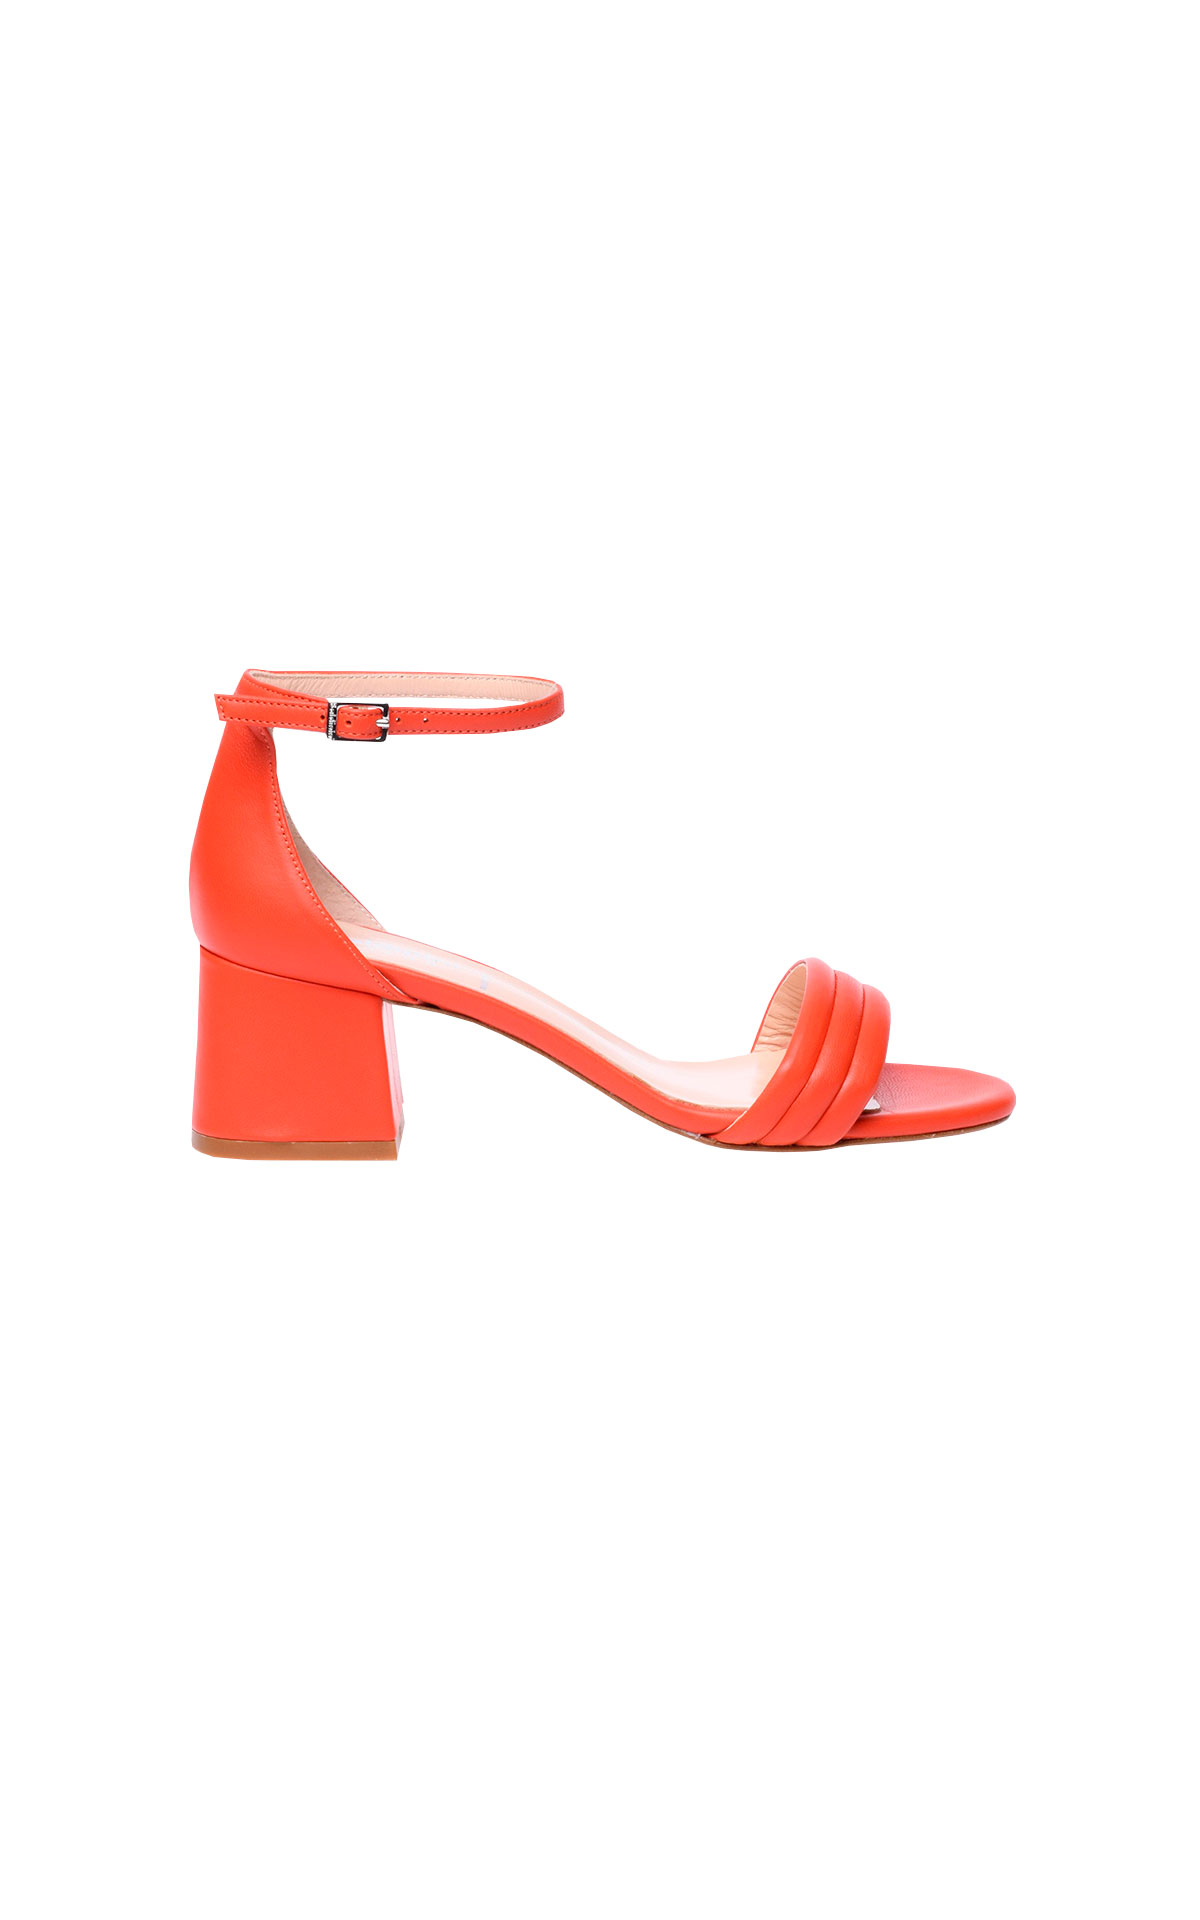 Orange sandals from Baldinini